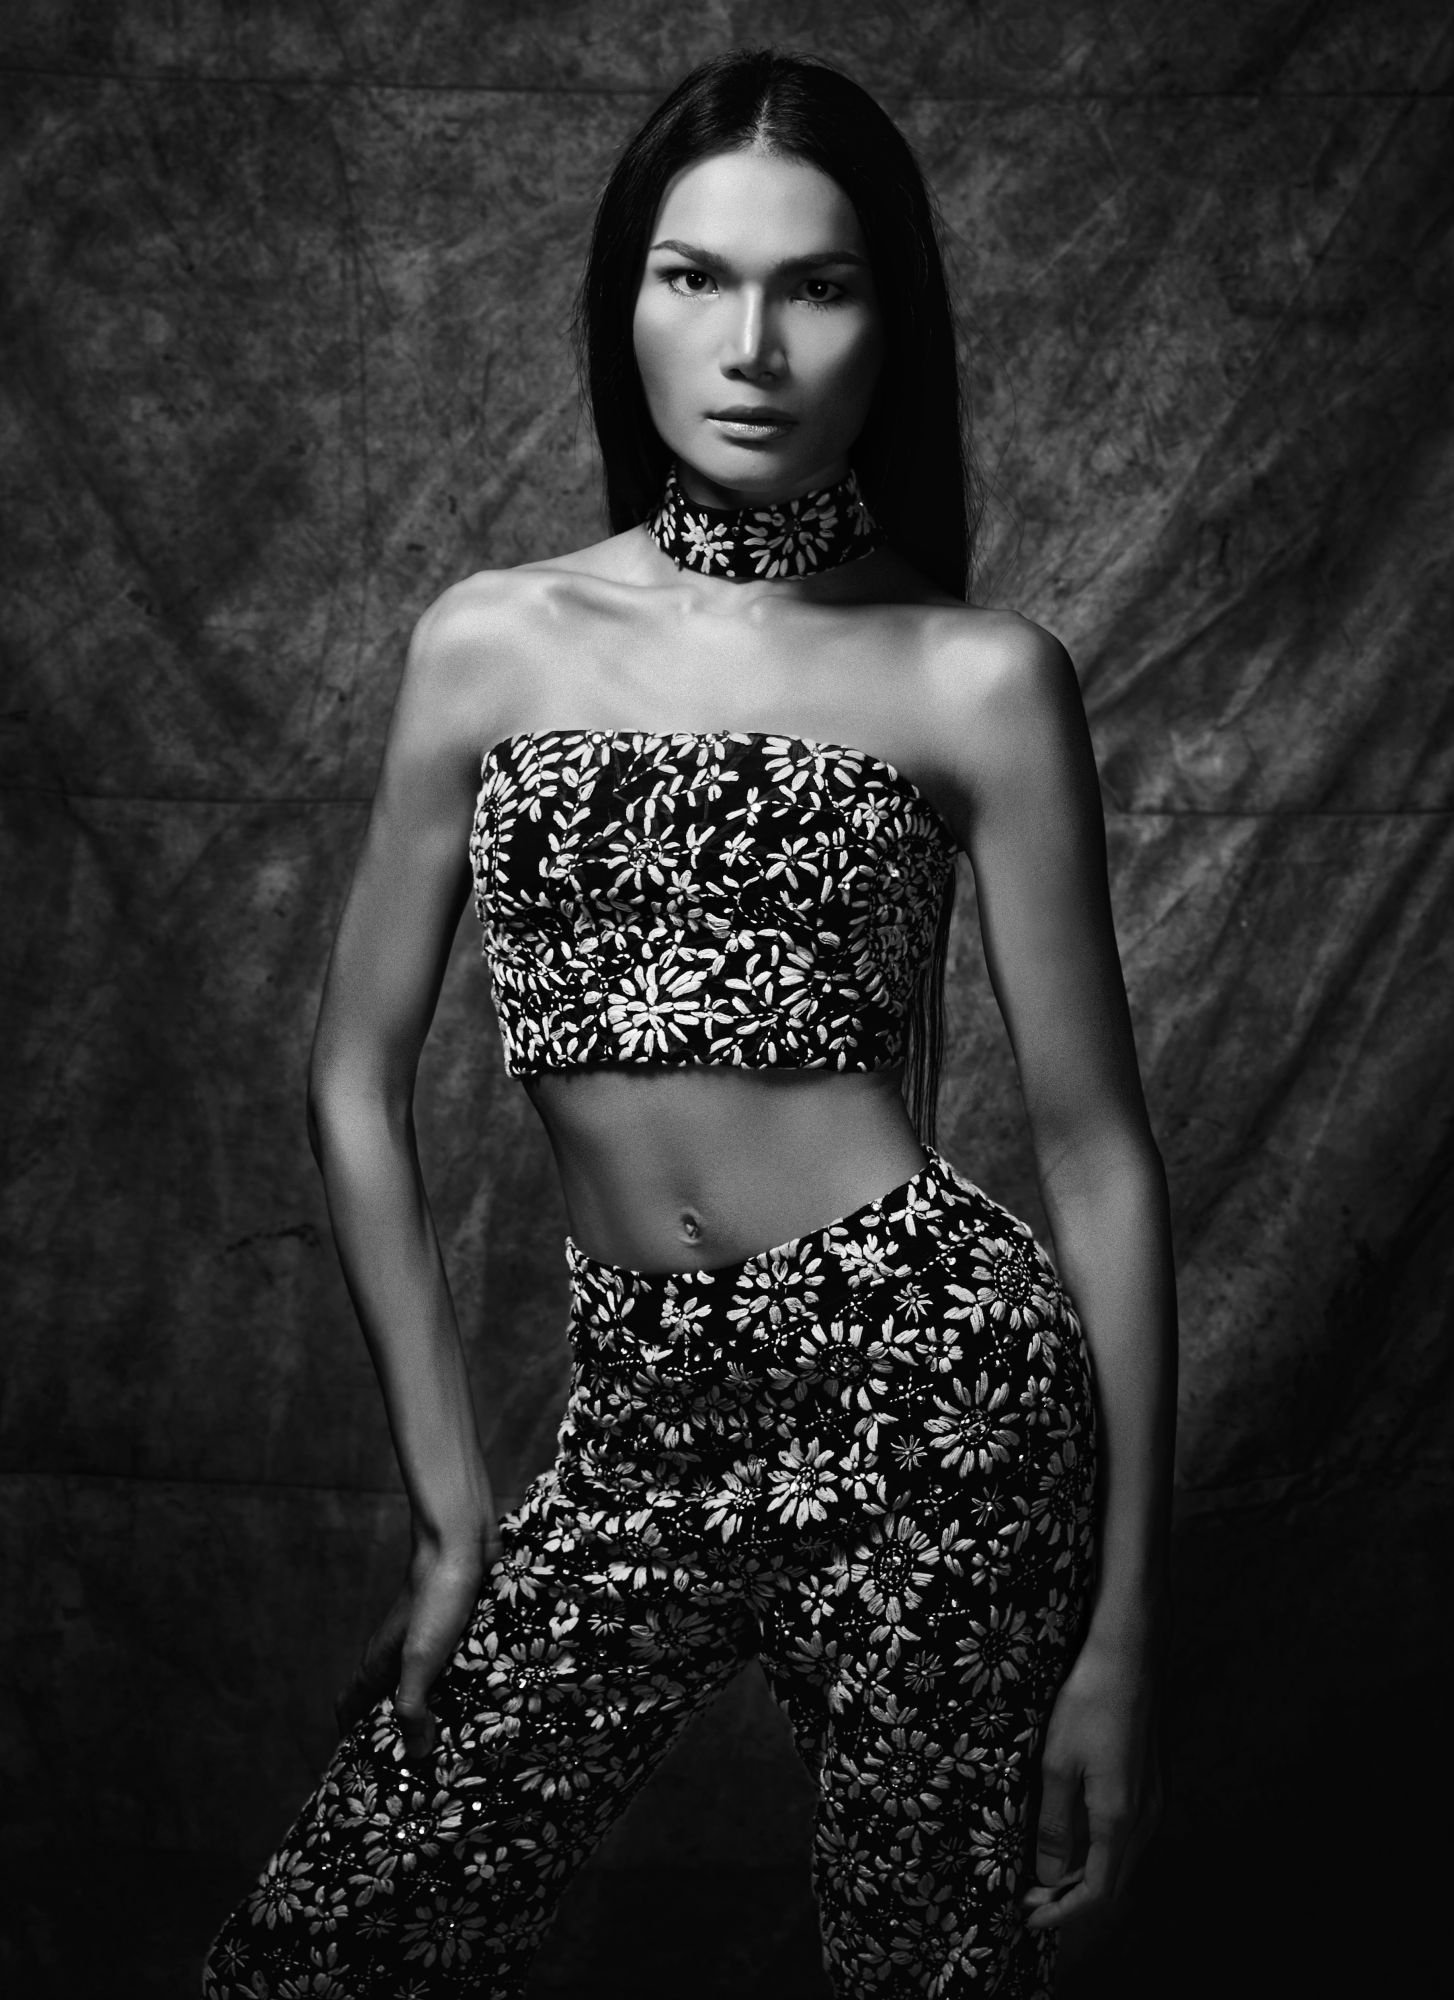 Transgender Model Mimi Tao On Buddhism, Beauty Standards And Self-Acceptance